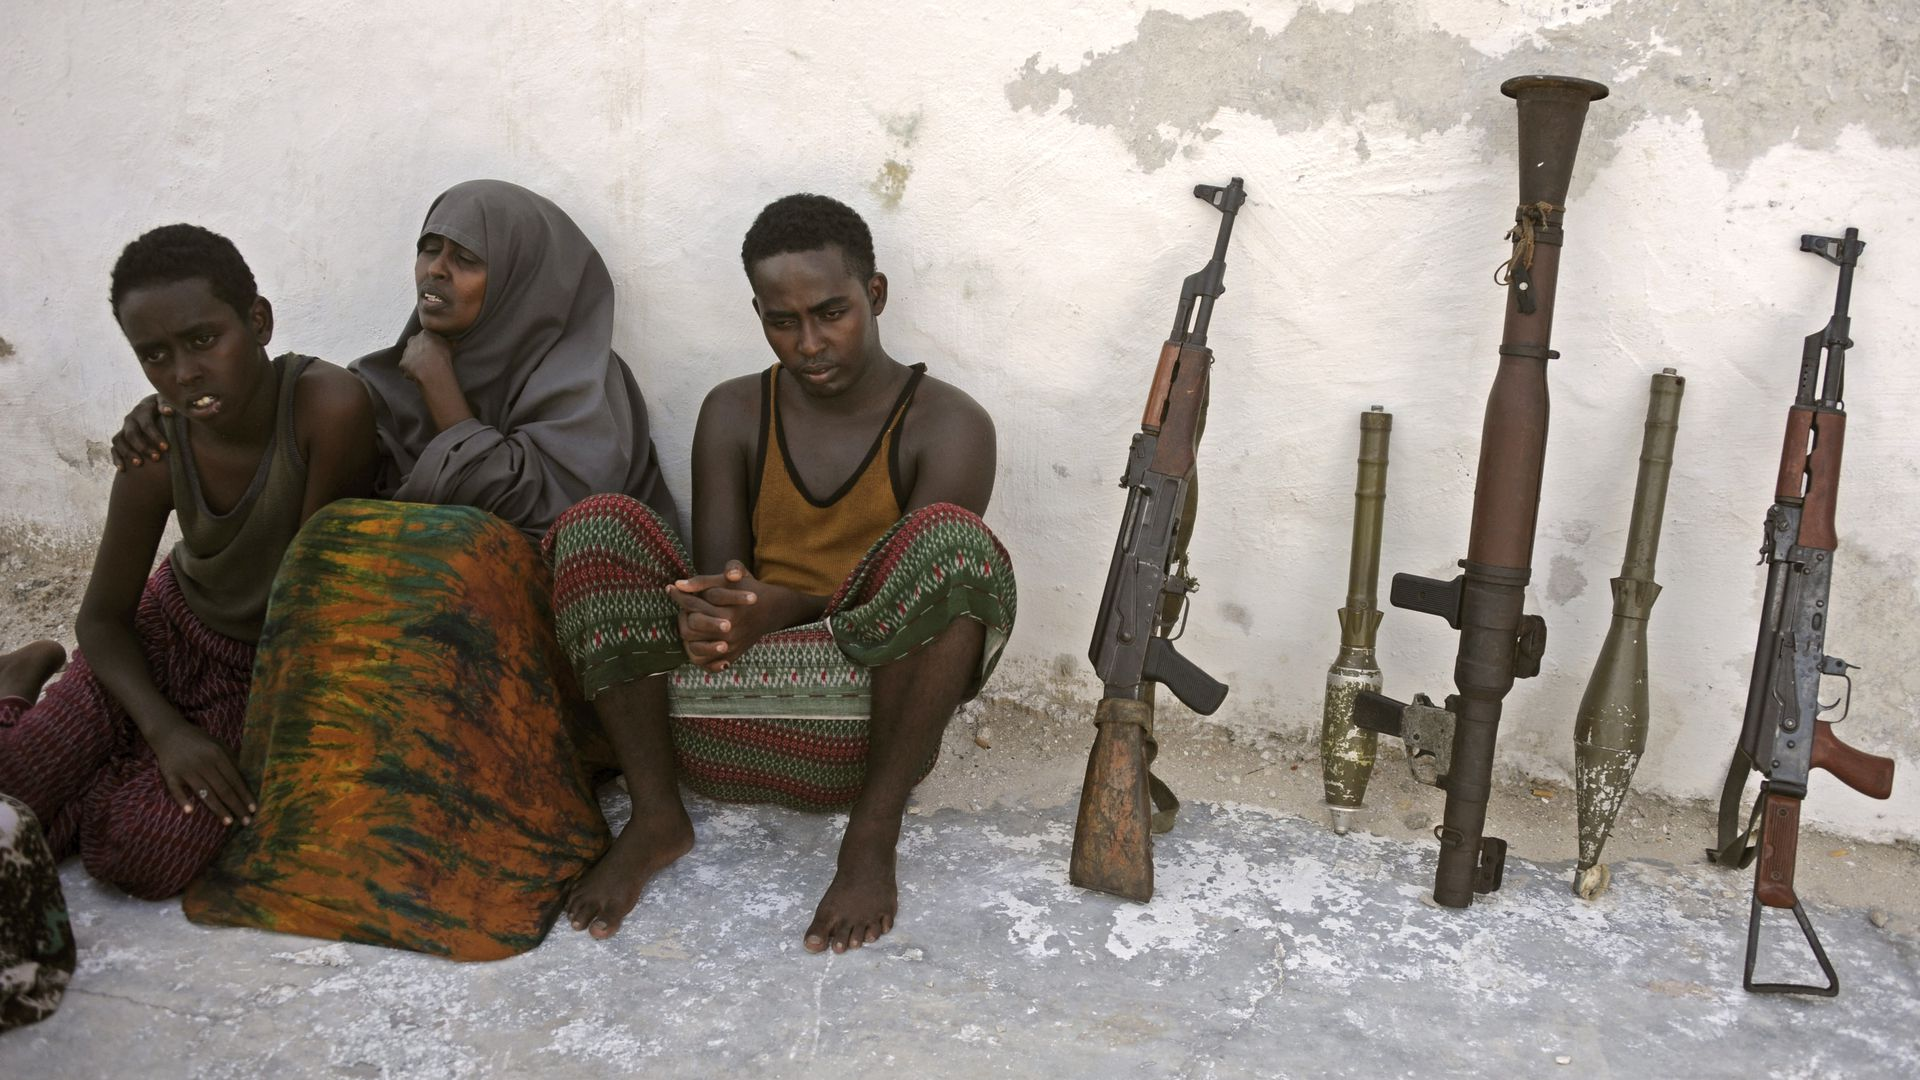 Suspected Al Qaeda-aligned Shabaab militants, a woman and her three children, sit next to weapons after their arrest on May 5, 2016 in Mogadishu